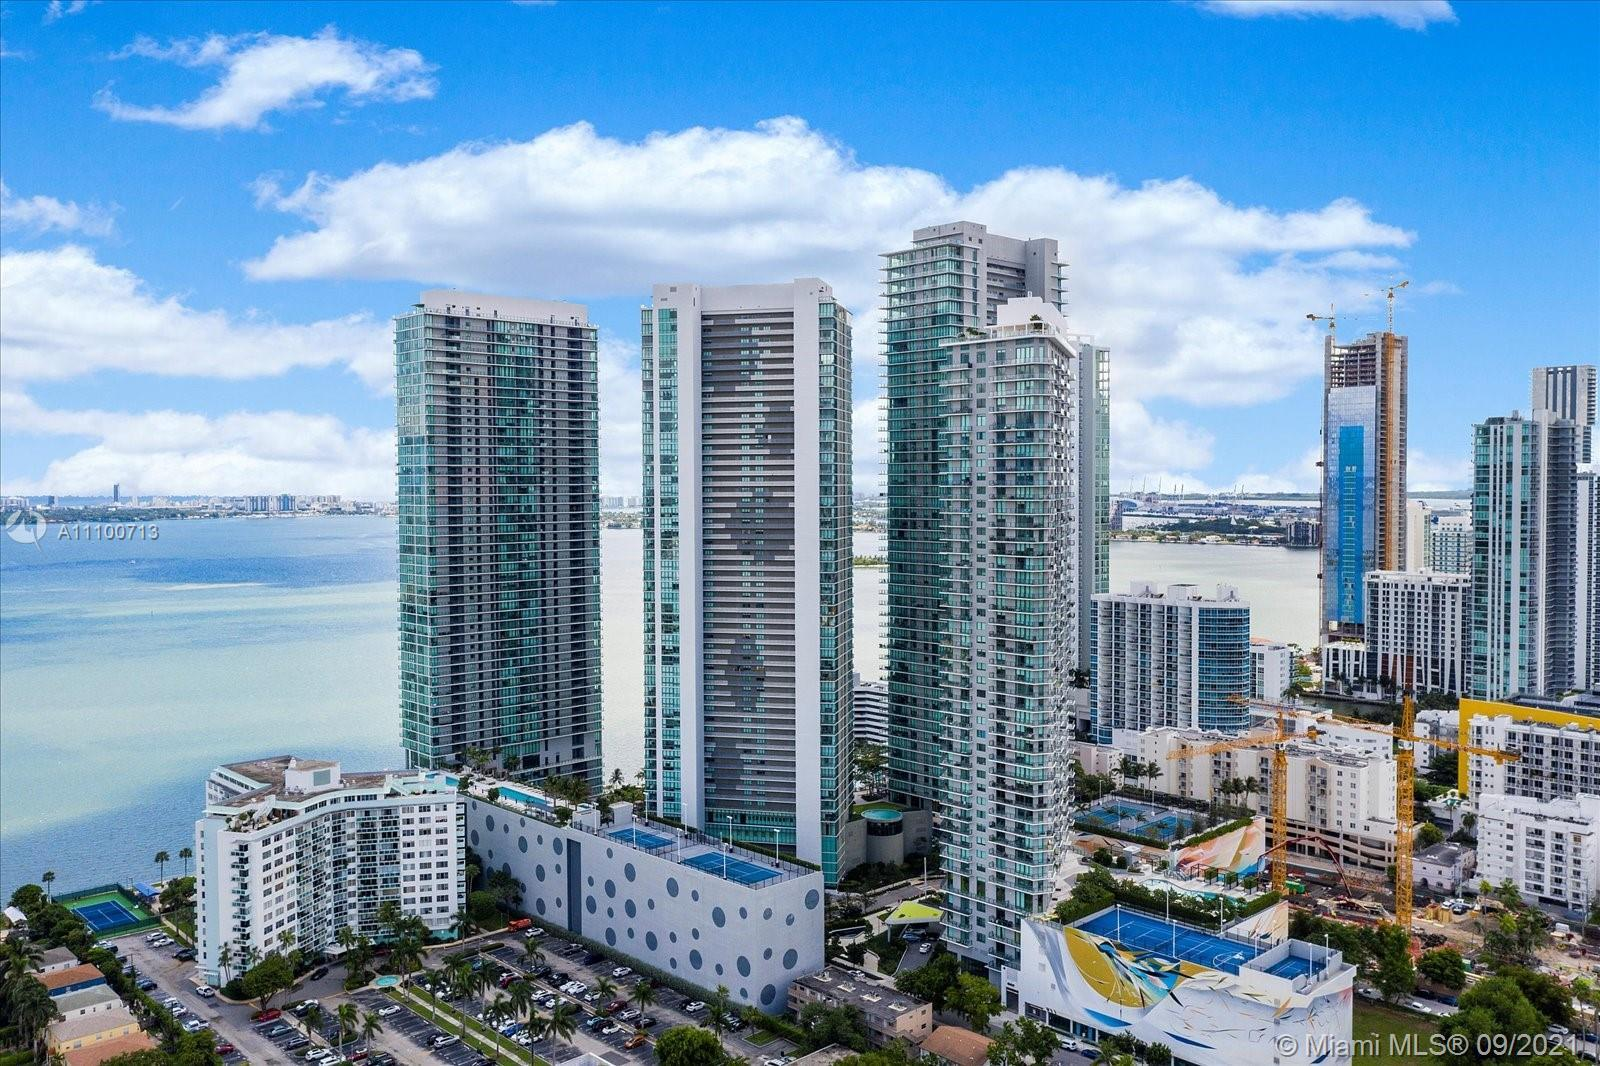 Fall in love with this Amazing 2 bed 2 bath unit designer finished condo with spectacular views at t